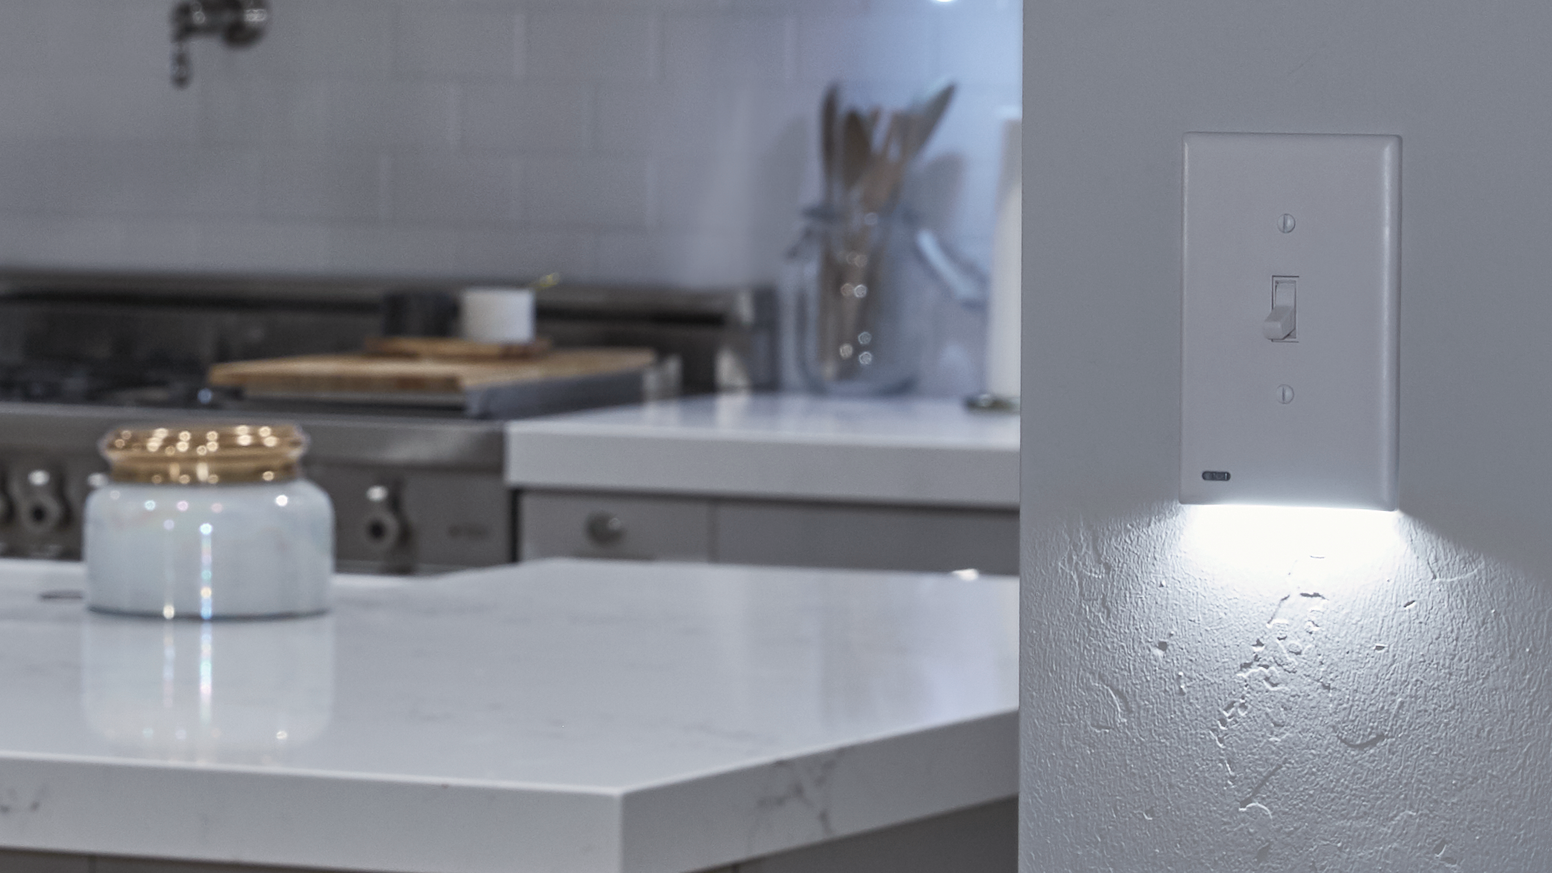 Instantly Turn Your Lightswitch Into An Automatic Nightlight By Wiring A Light Switch For Dummies The Snappower Switchlight Is Cover That Doubles As Night It